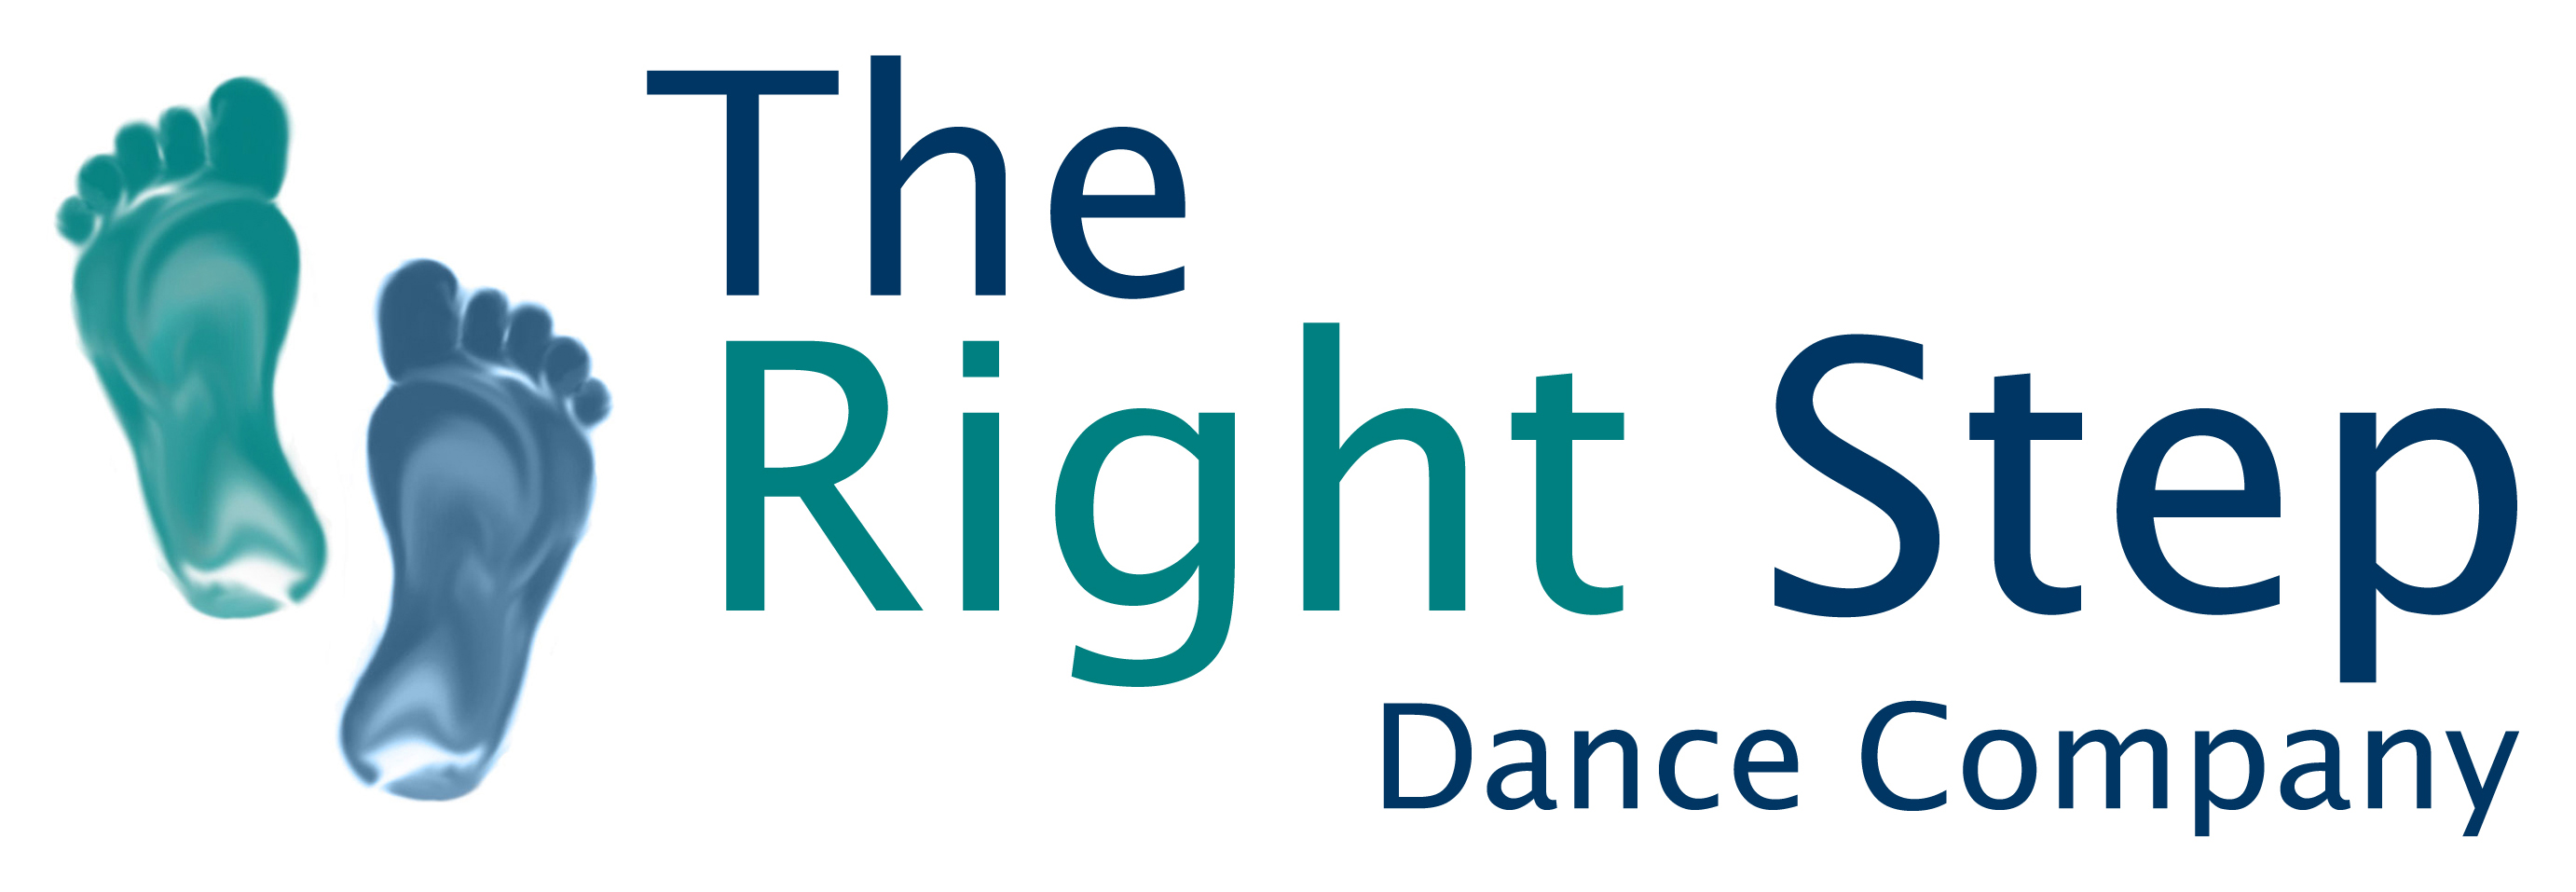 The Right Step Dance Company